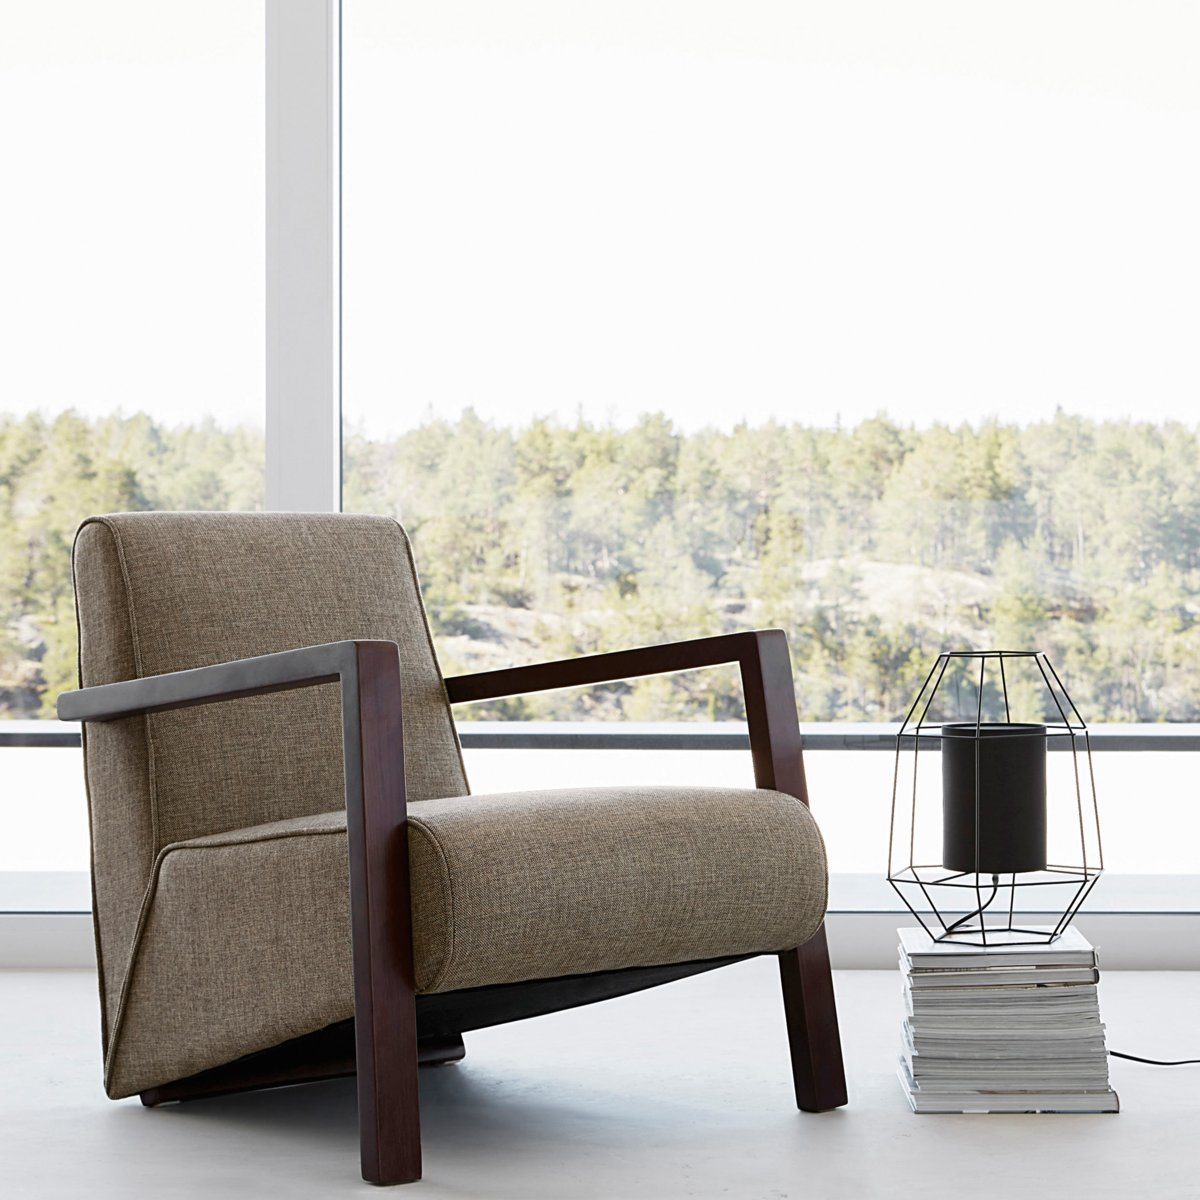 ampm-hiver-2015-fauteuil-club